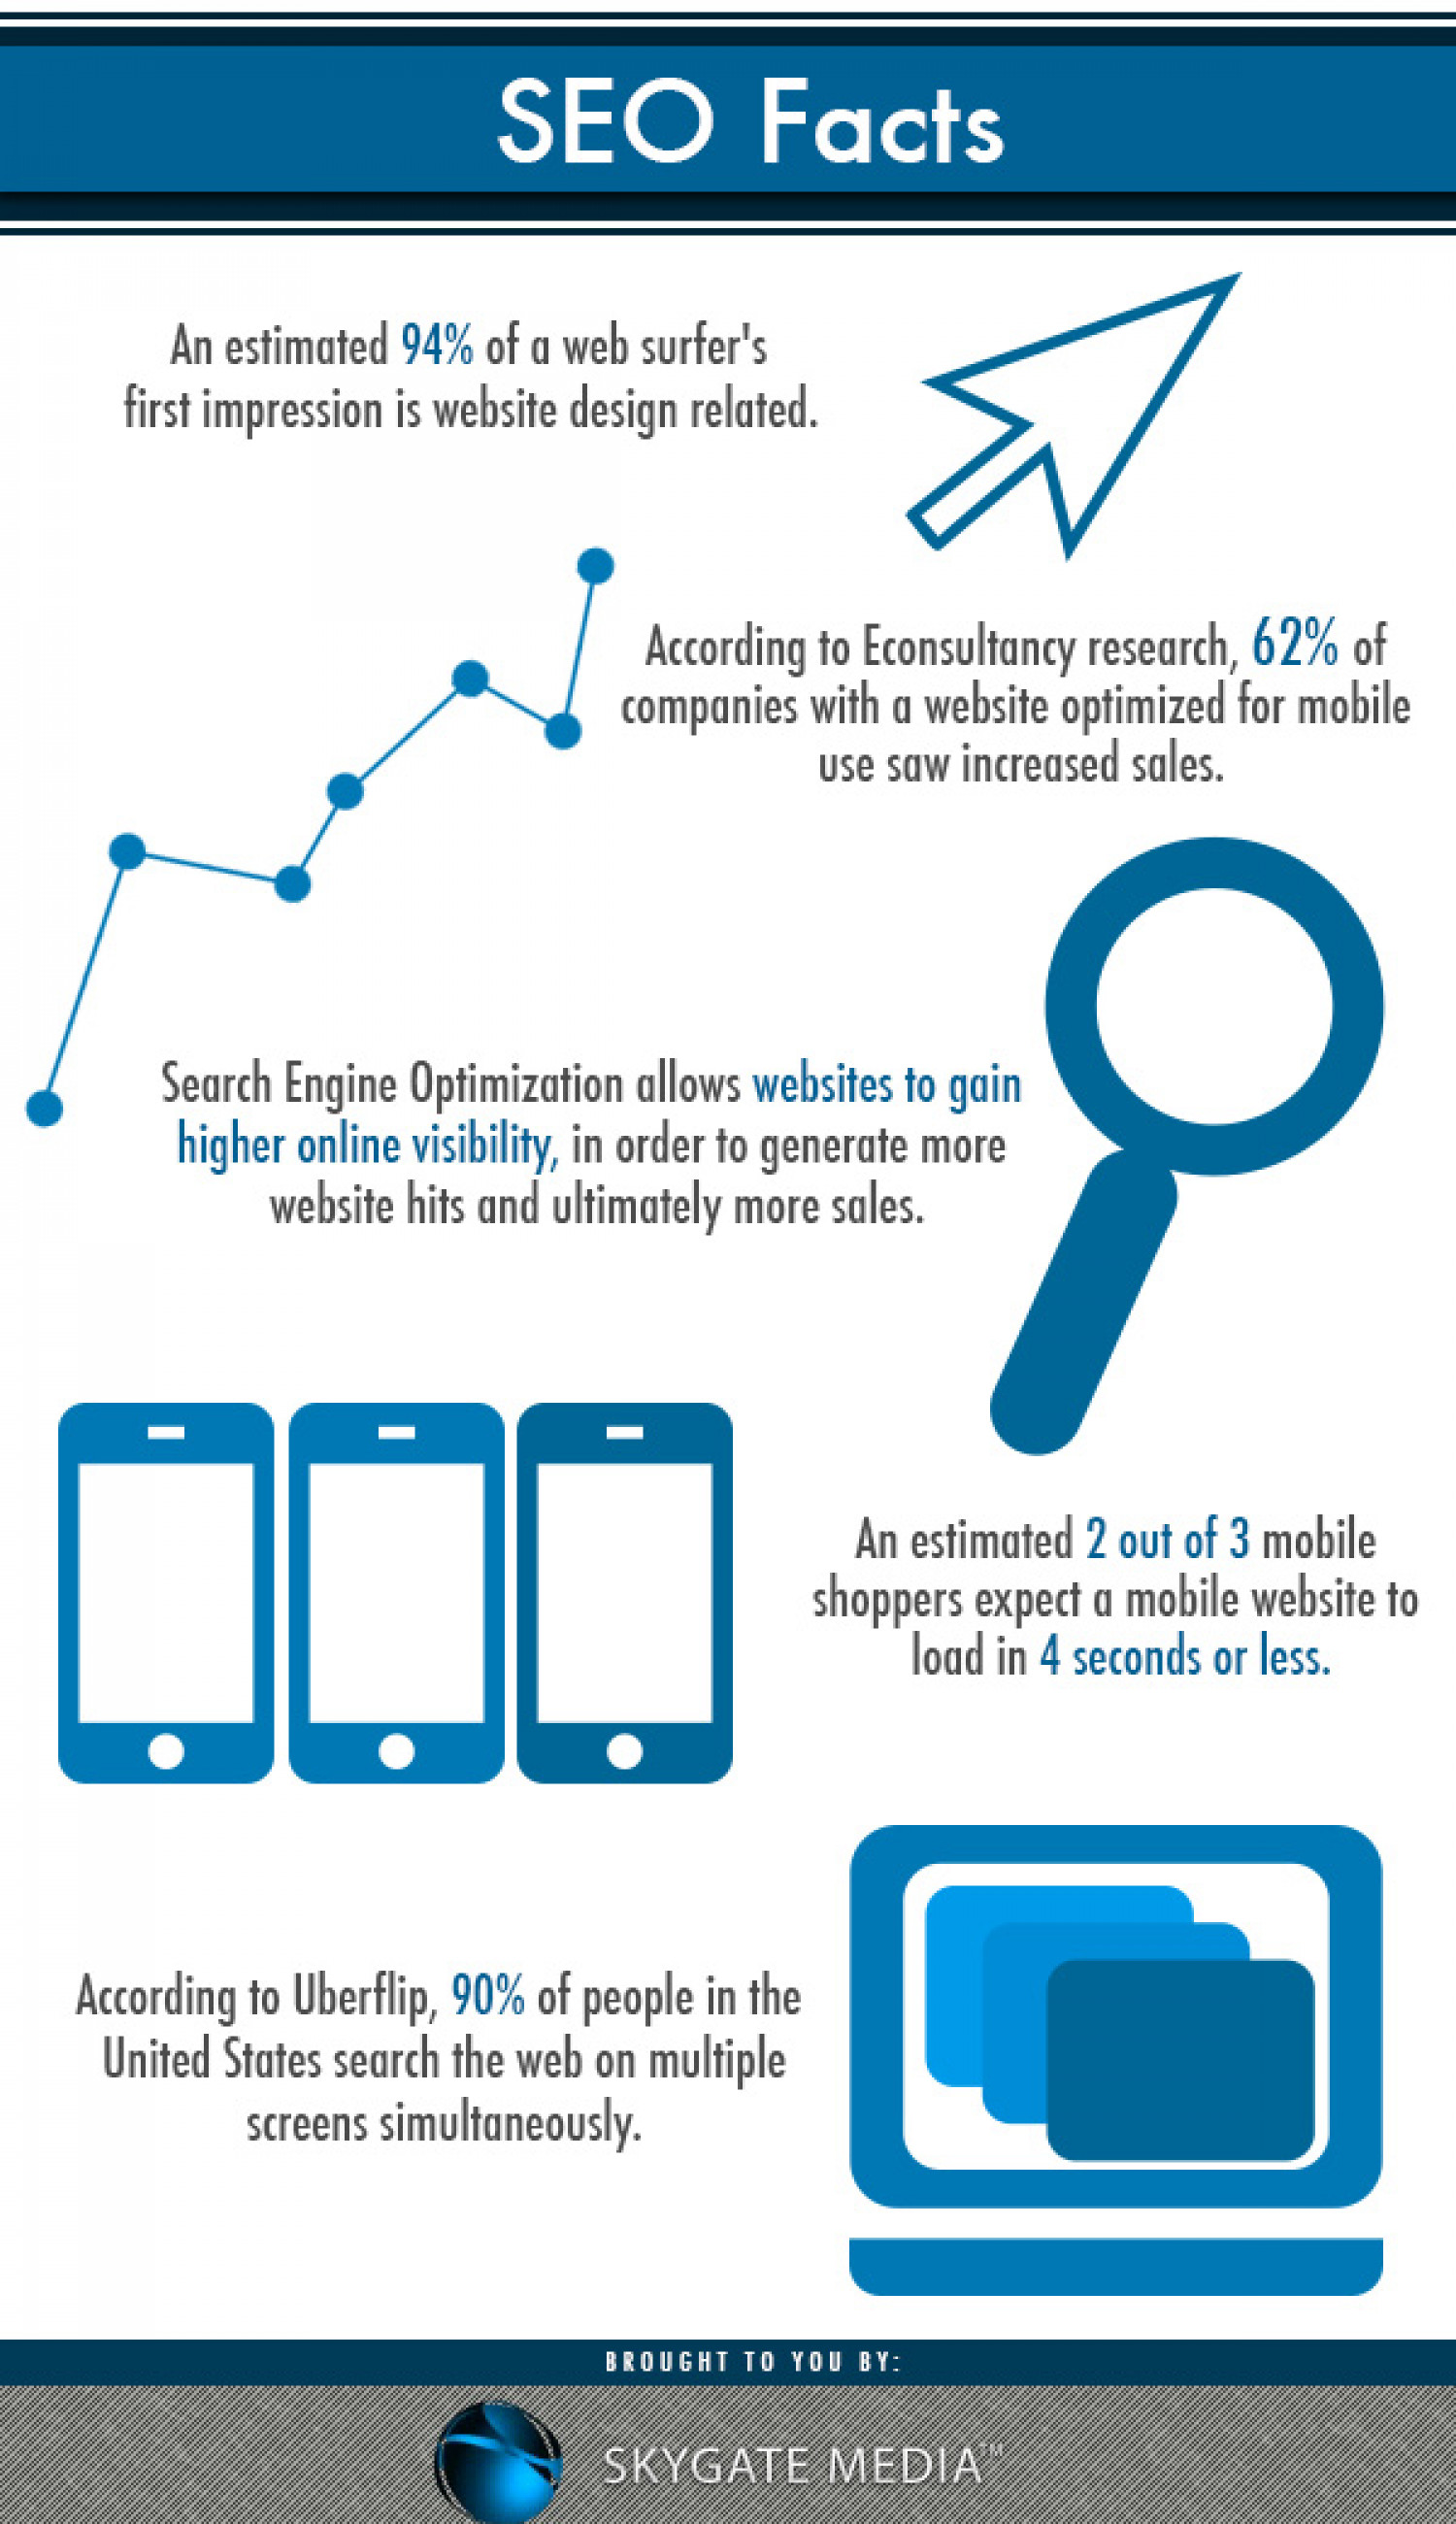 SEO Facts Infographic